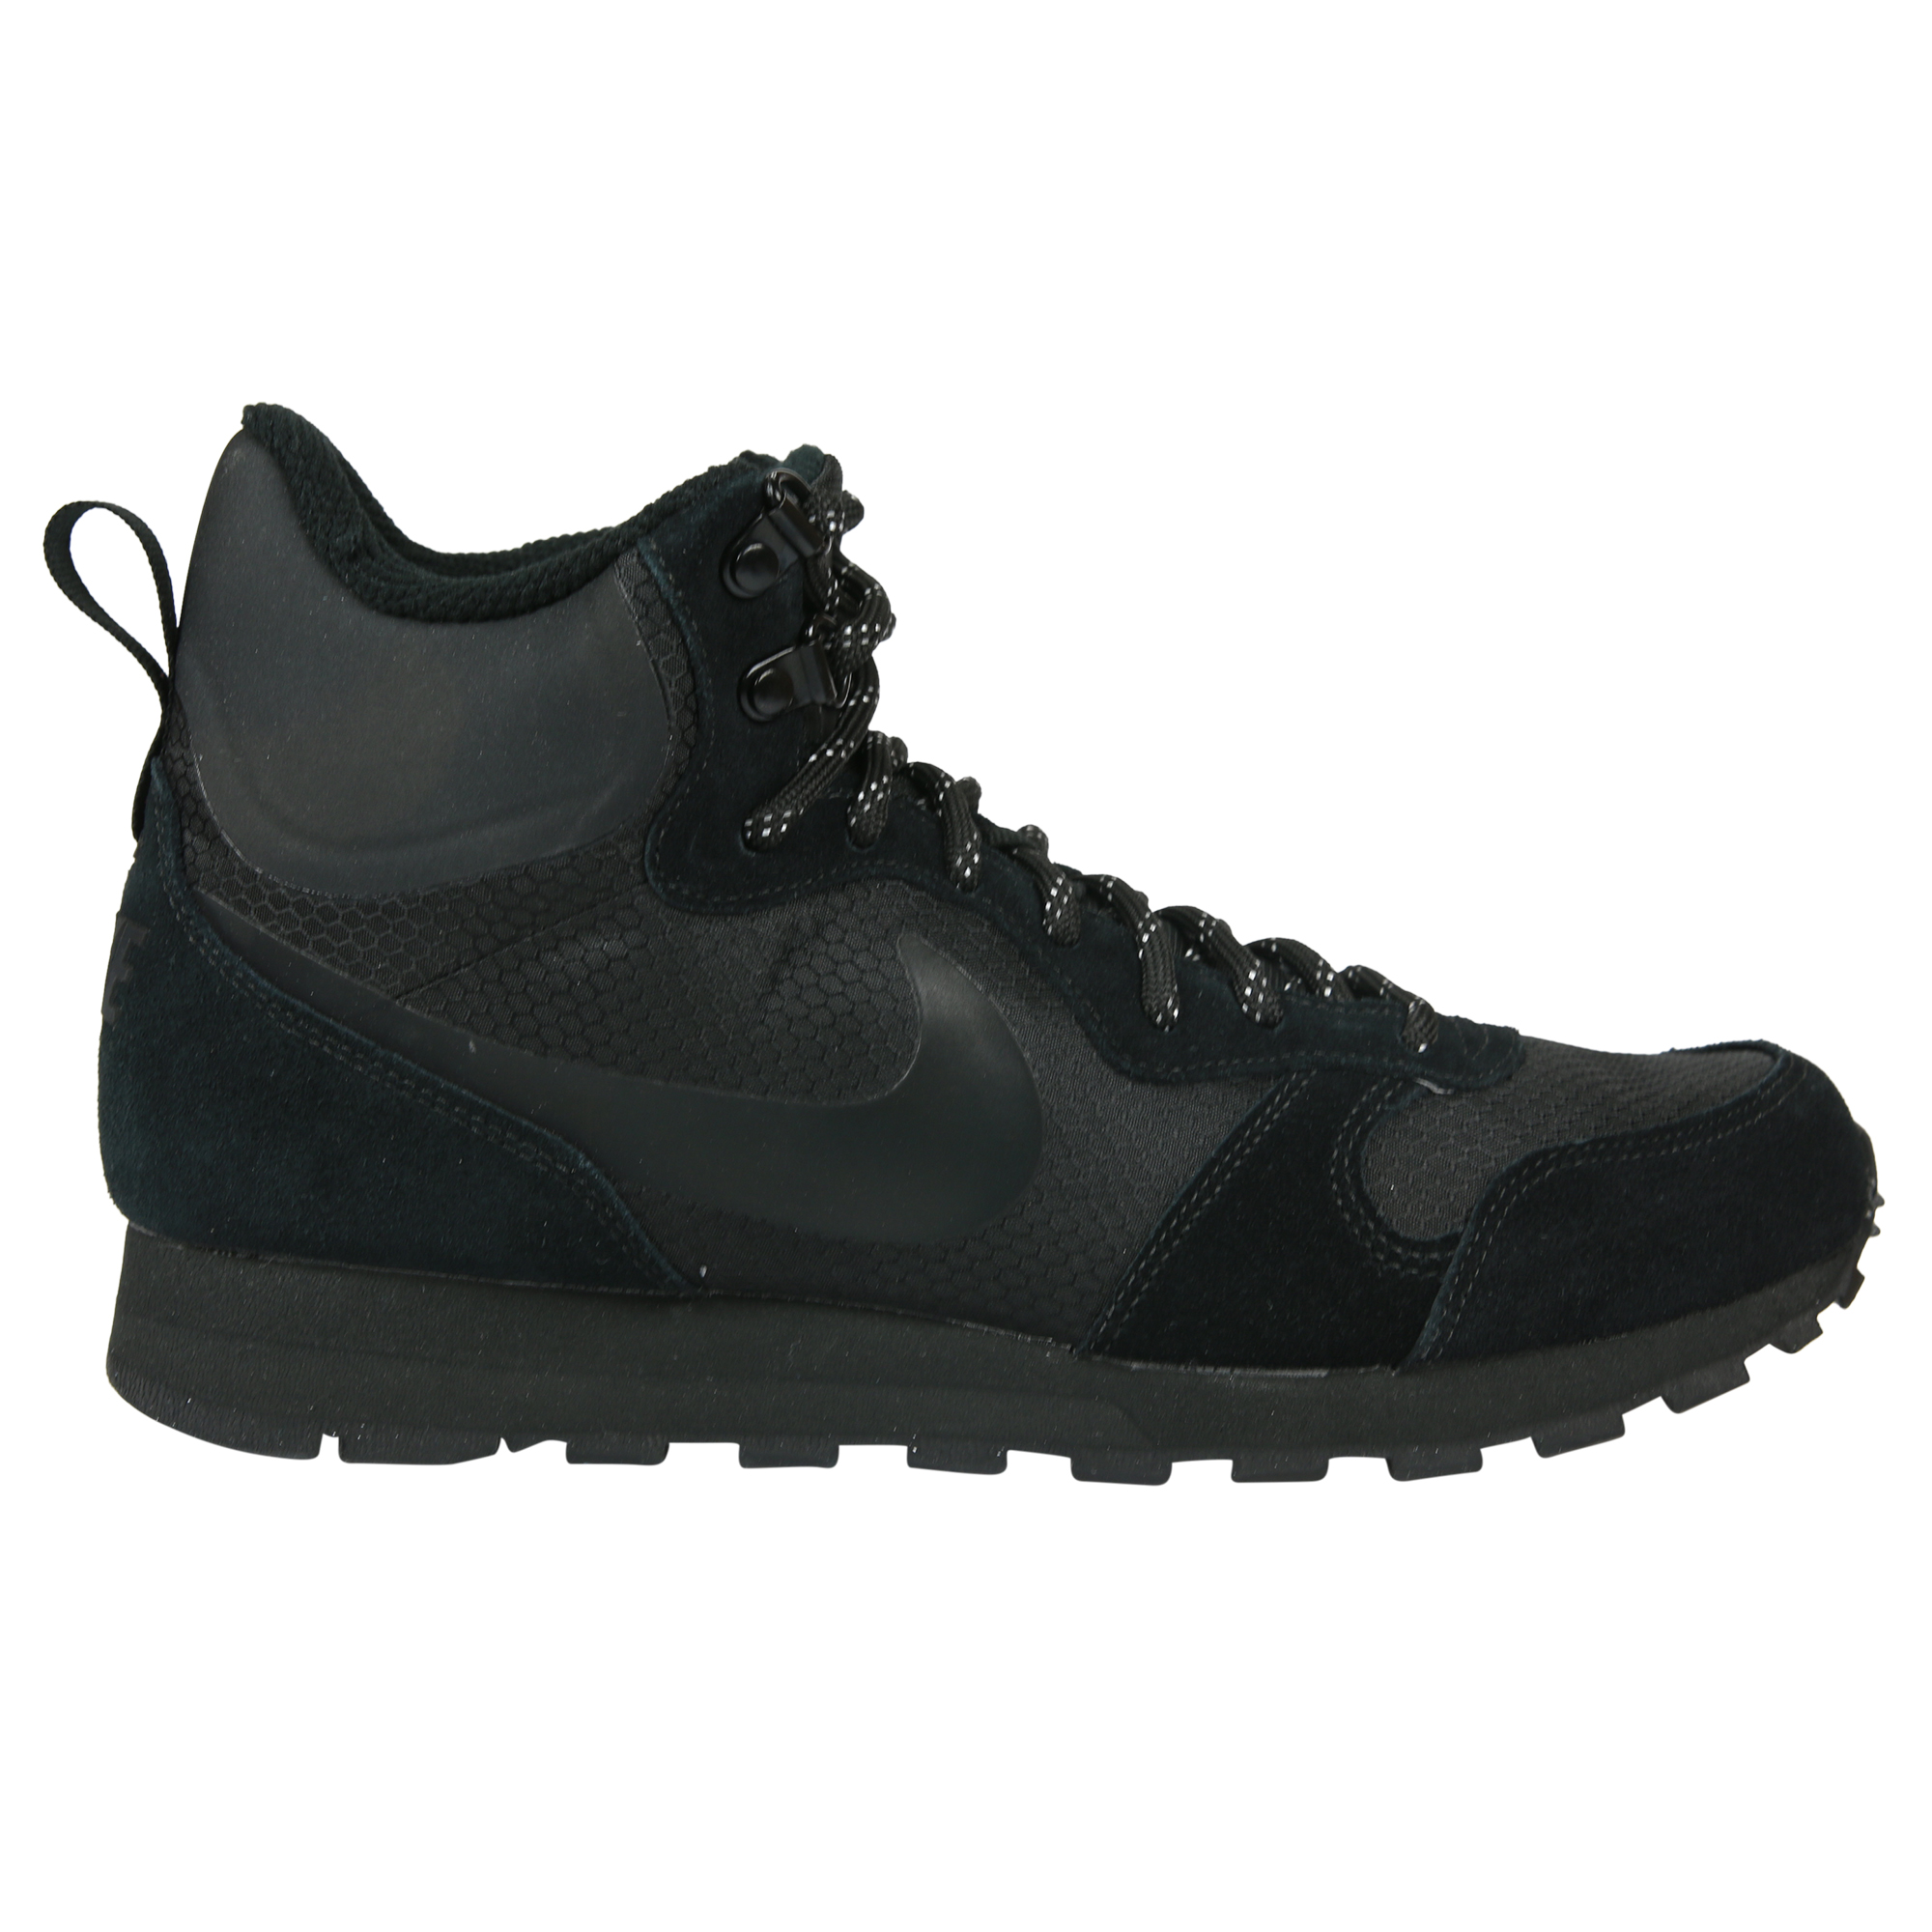 nike md runner 2 mid premium schuhe sneaker boots winter. Black Bedroom Furniture Sets. Home Design Ideas